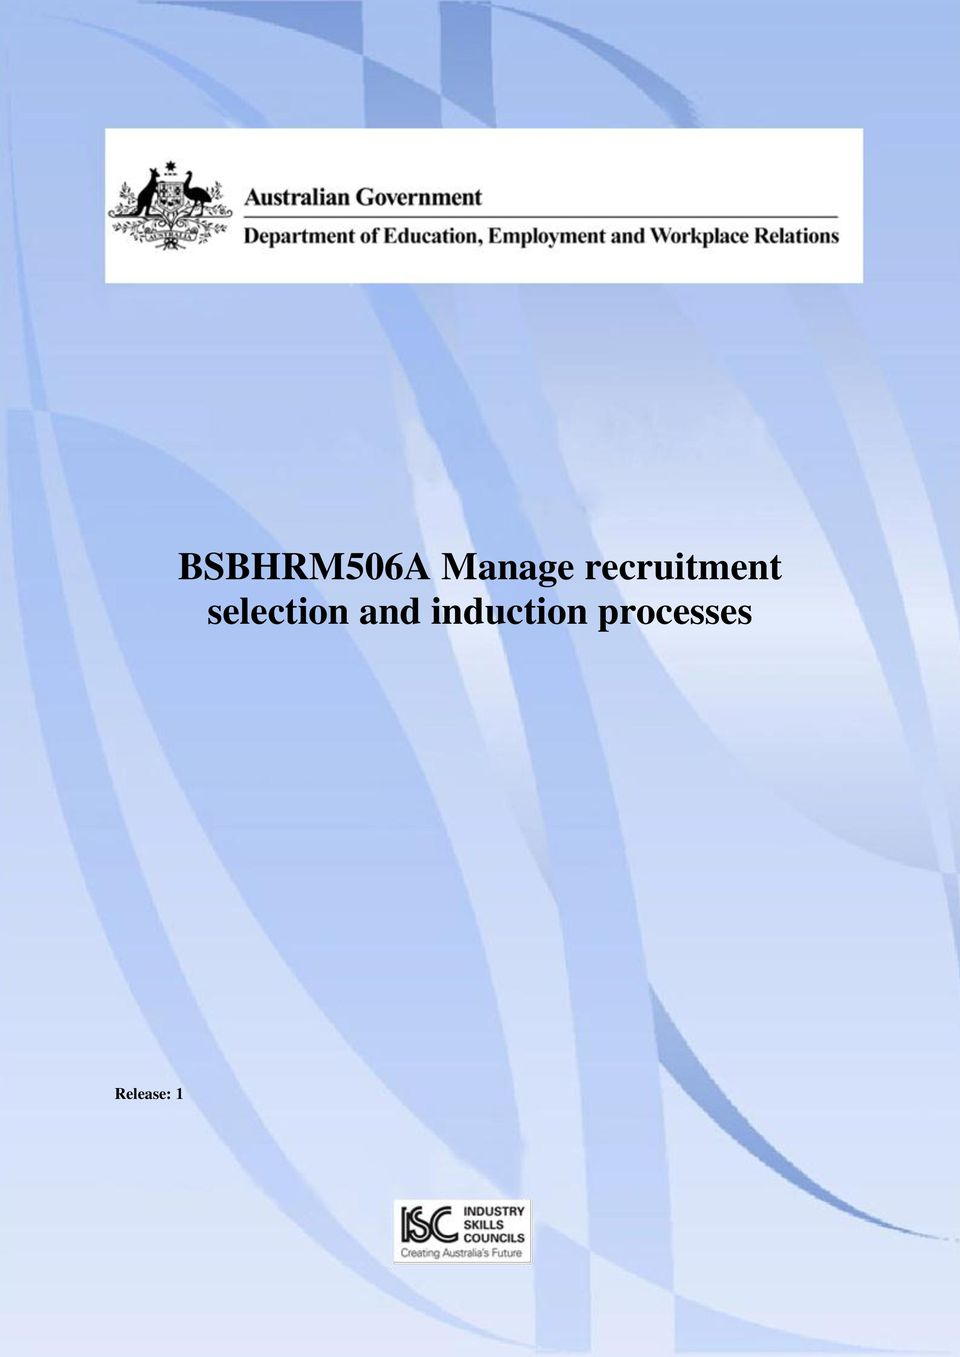 bsbhrm506a manage recruitment selection and induction pro Bsbhrm506a: manage recruitment selection and induction processes aspects of the recruitment selection and induction processes in accordance with.